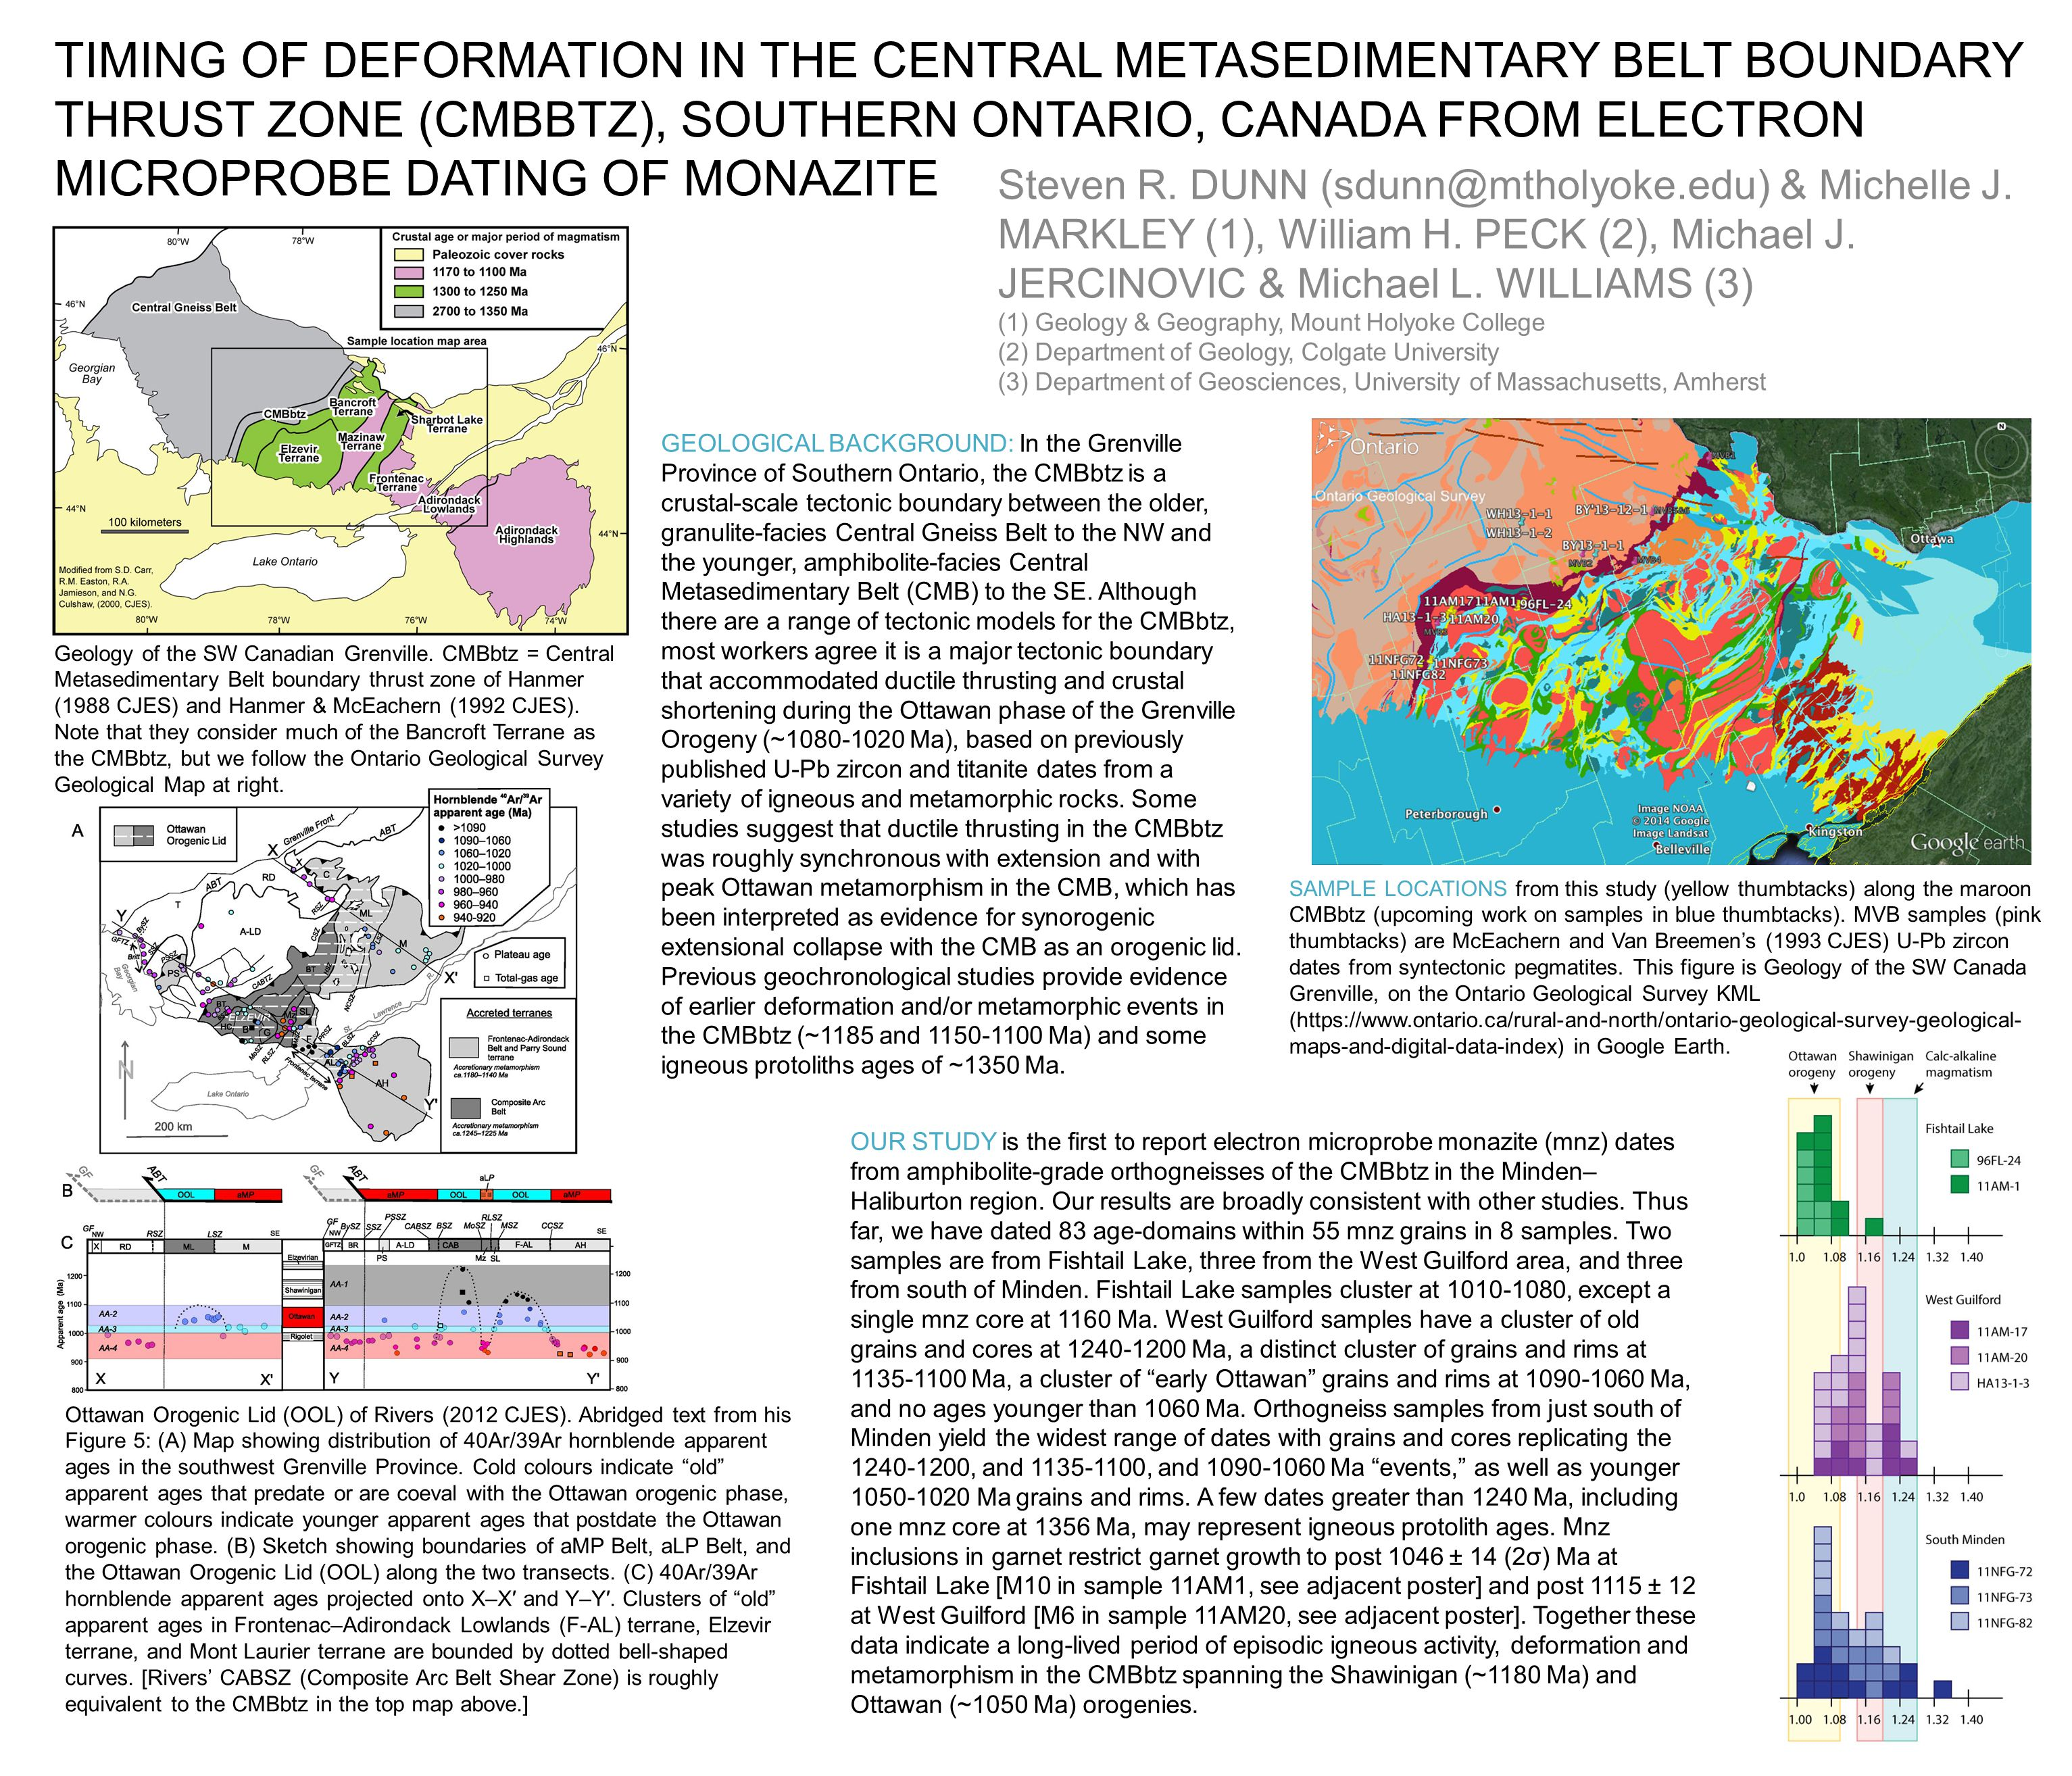 TIMING OF DEFORMATION IN THE CENTRAL METASEDIMENTARY BELT BOUNDARY THRUST ZONE (CMBBTZ), SOUTHERN ONTARIO, CANADA FROM ELECTRON MICROPROBE DATING OF MONAZITE Steven R.